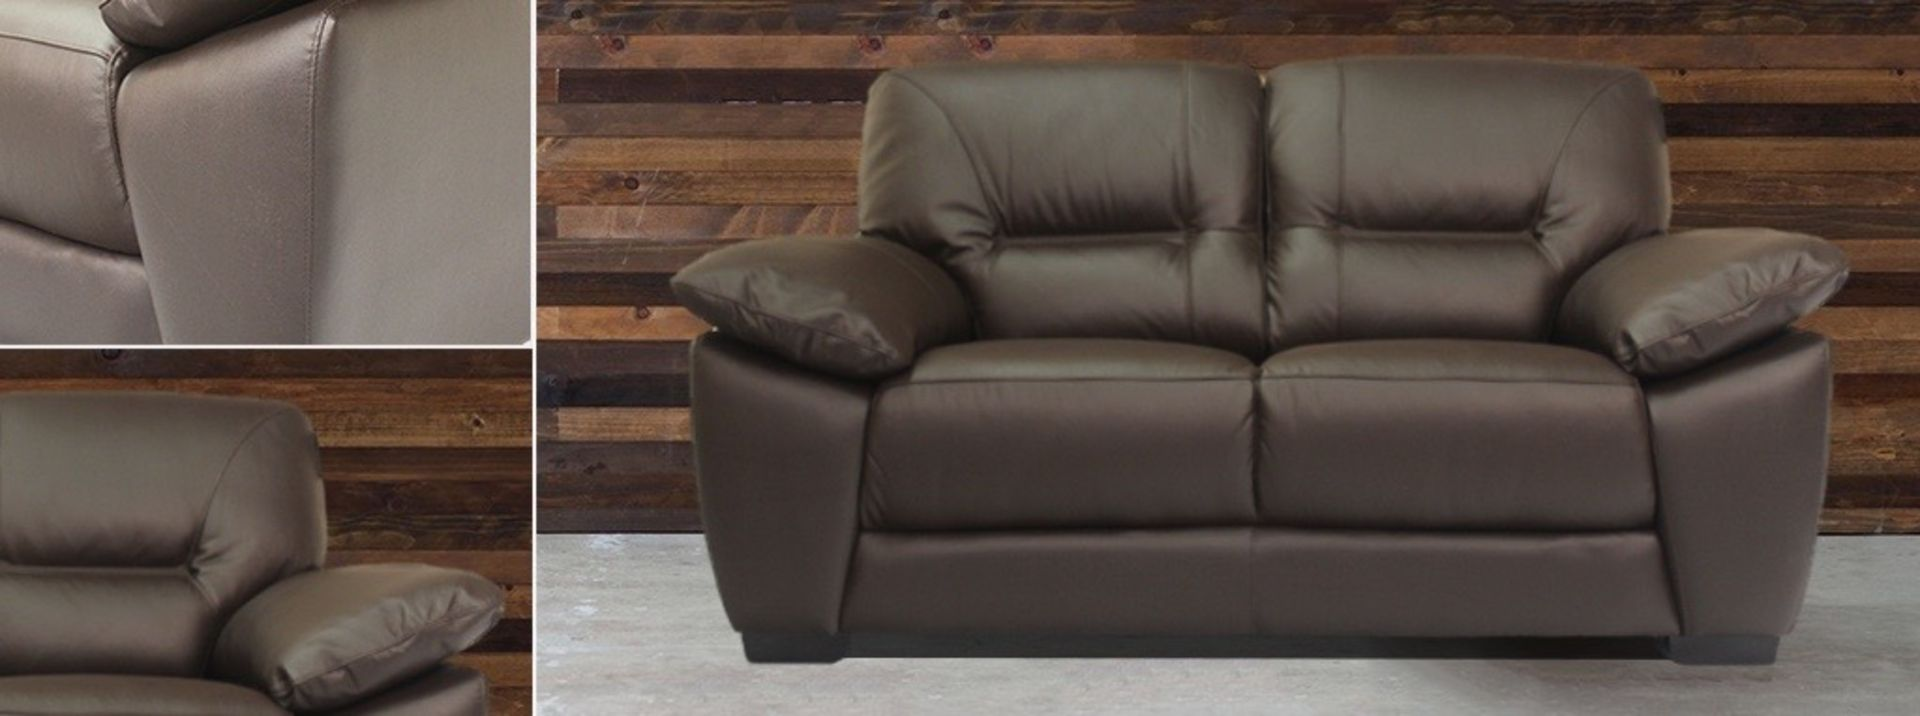 Lot 10 - Brown 2 Seat - Real Leather Sofa - Burghley Range